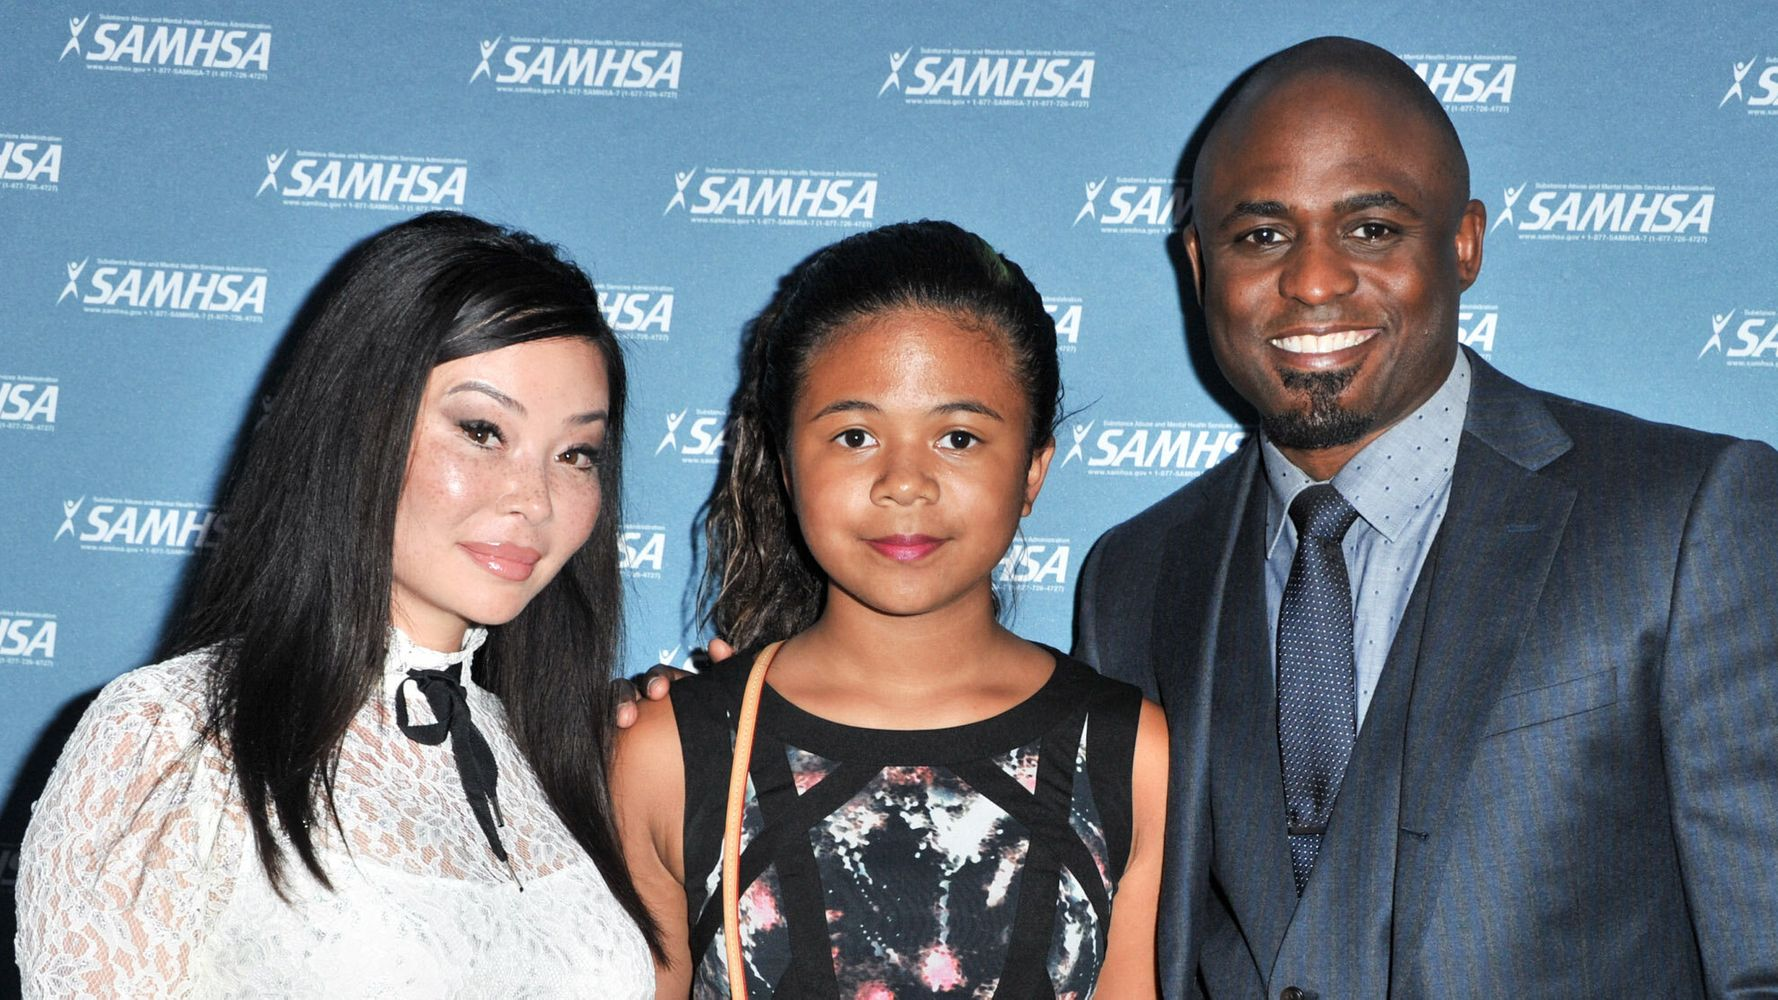 Wayne Brady Is Living With His Ex-Wife And Her Boyfriend During Coronavirus Crisis